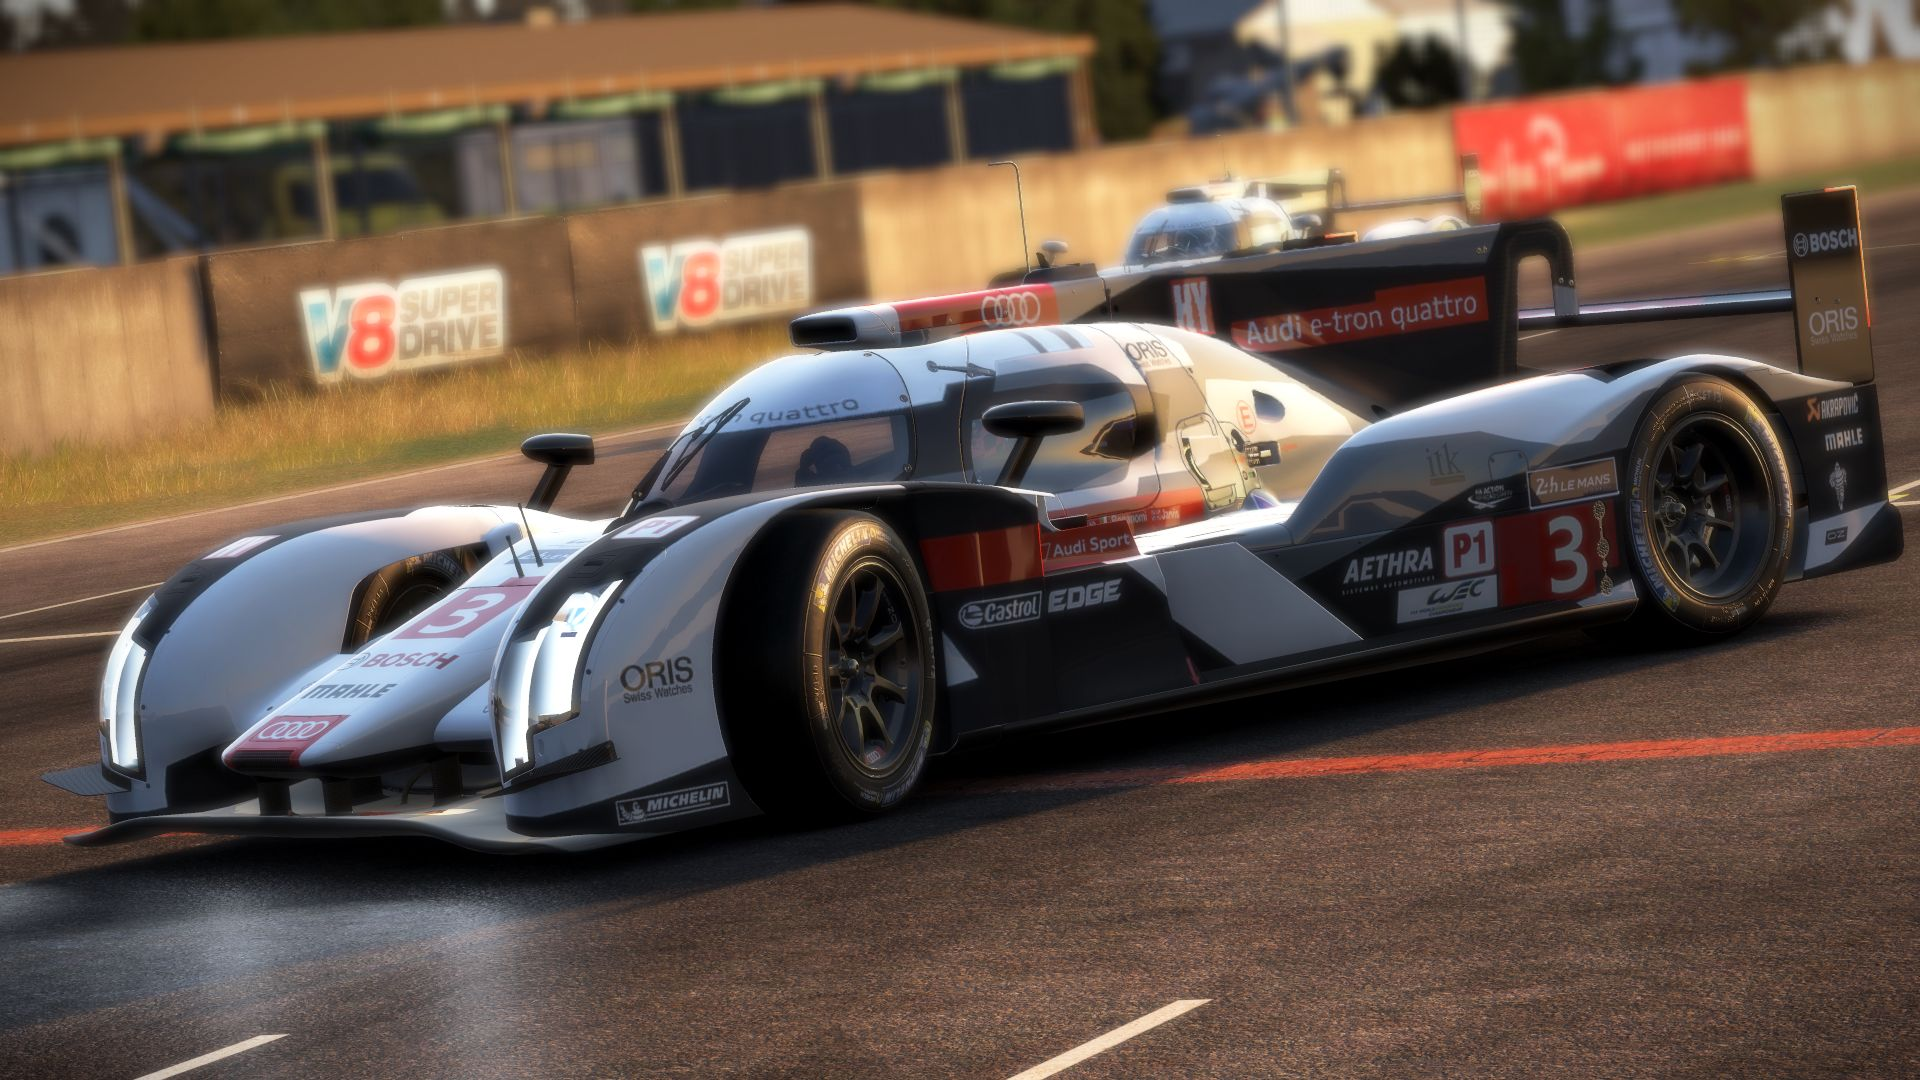 Project CARS Update Adds Ruapuna Park Circuit And Three